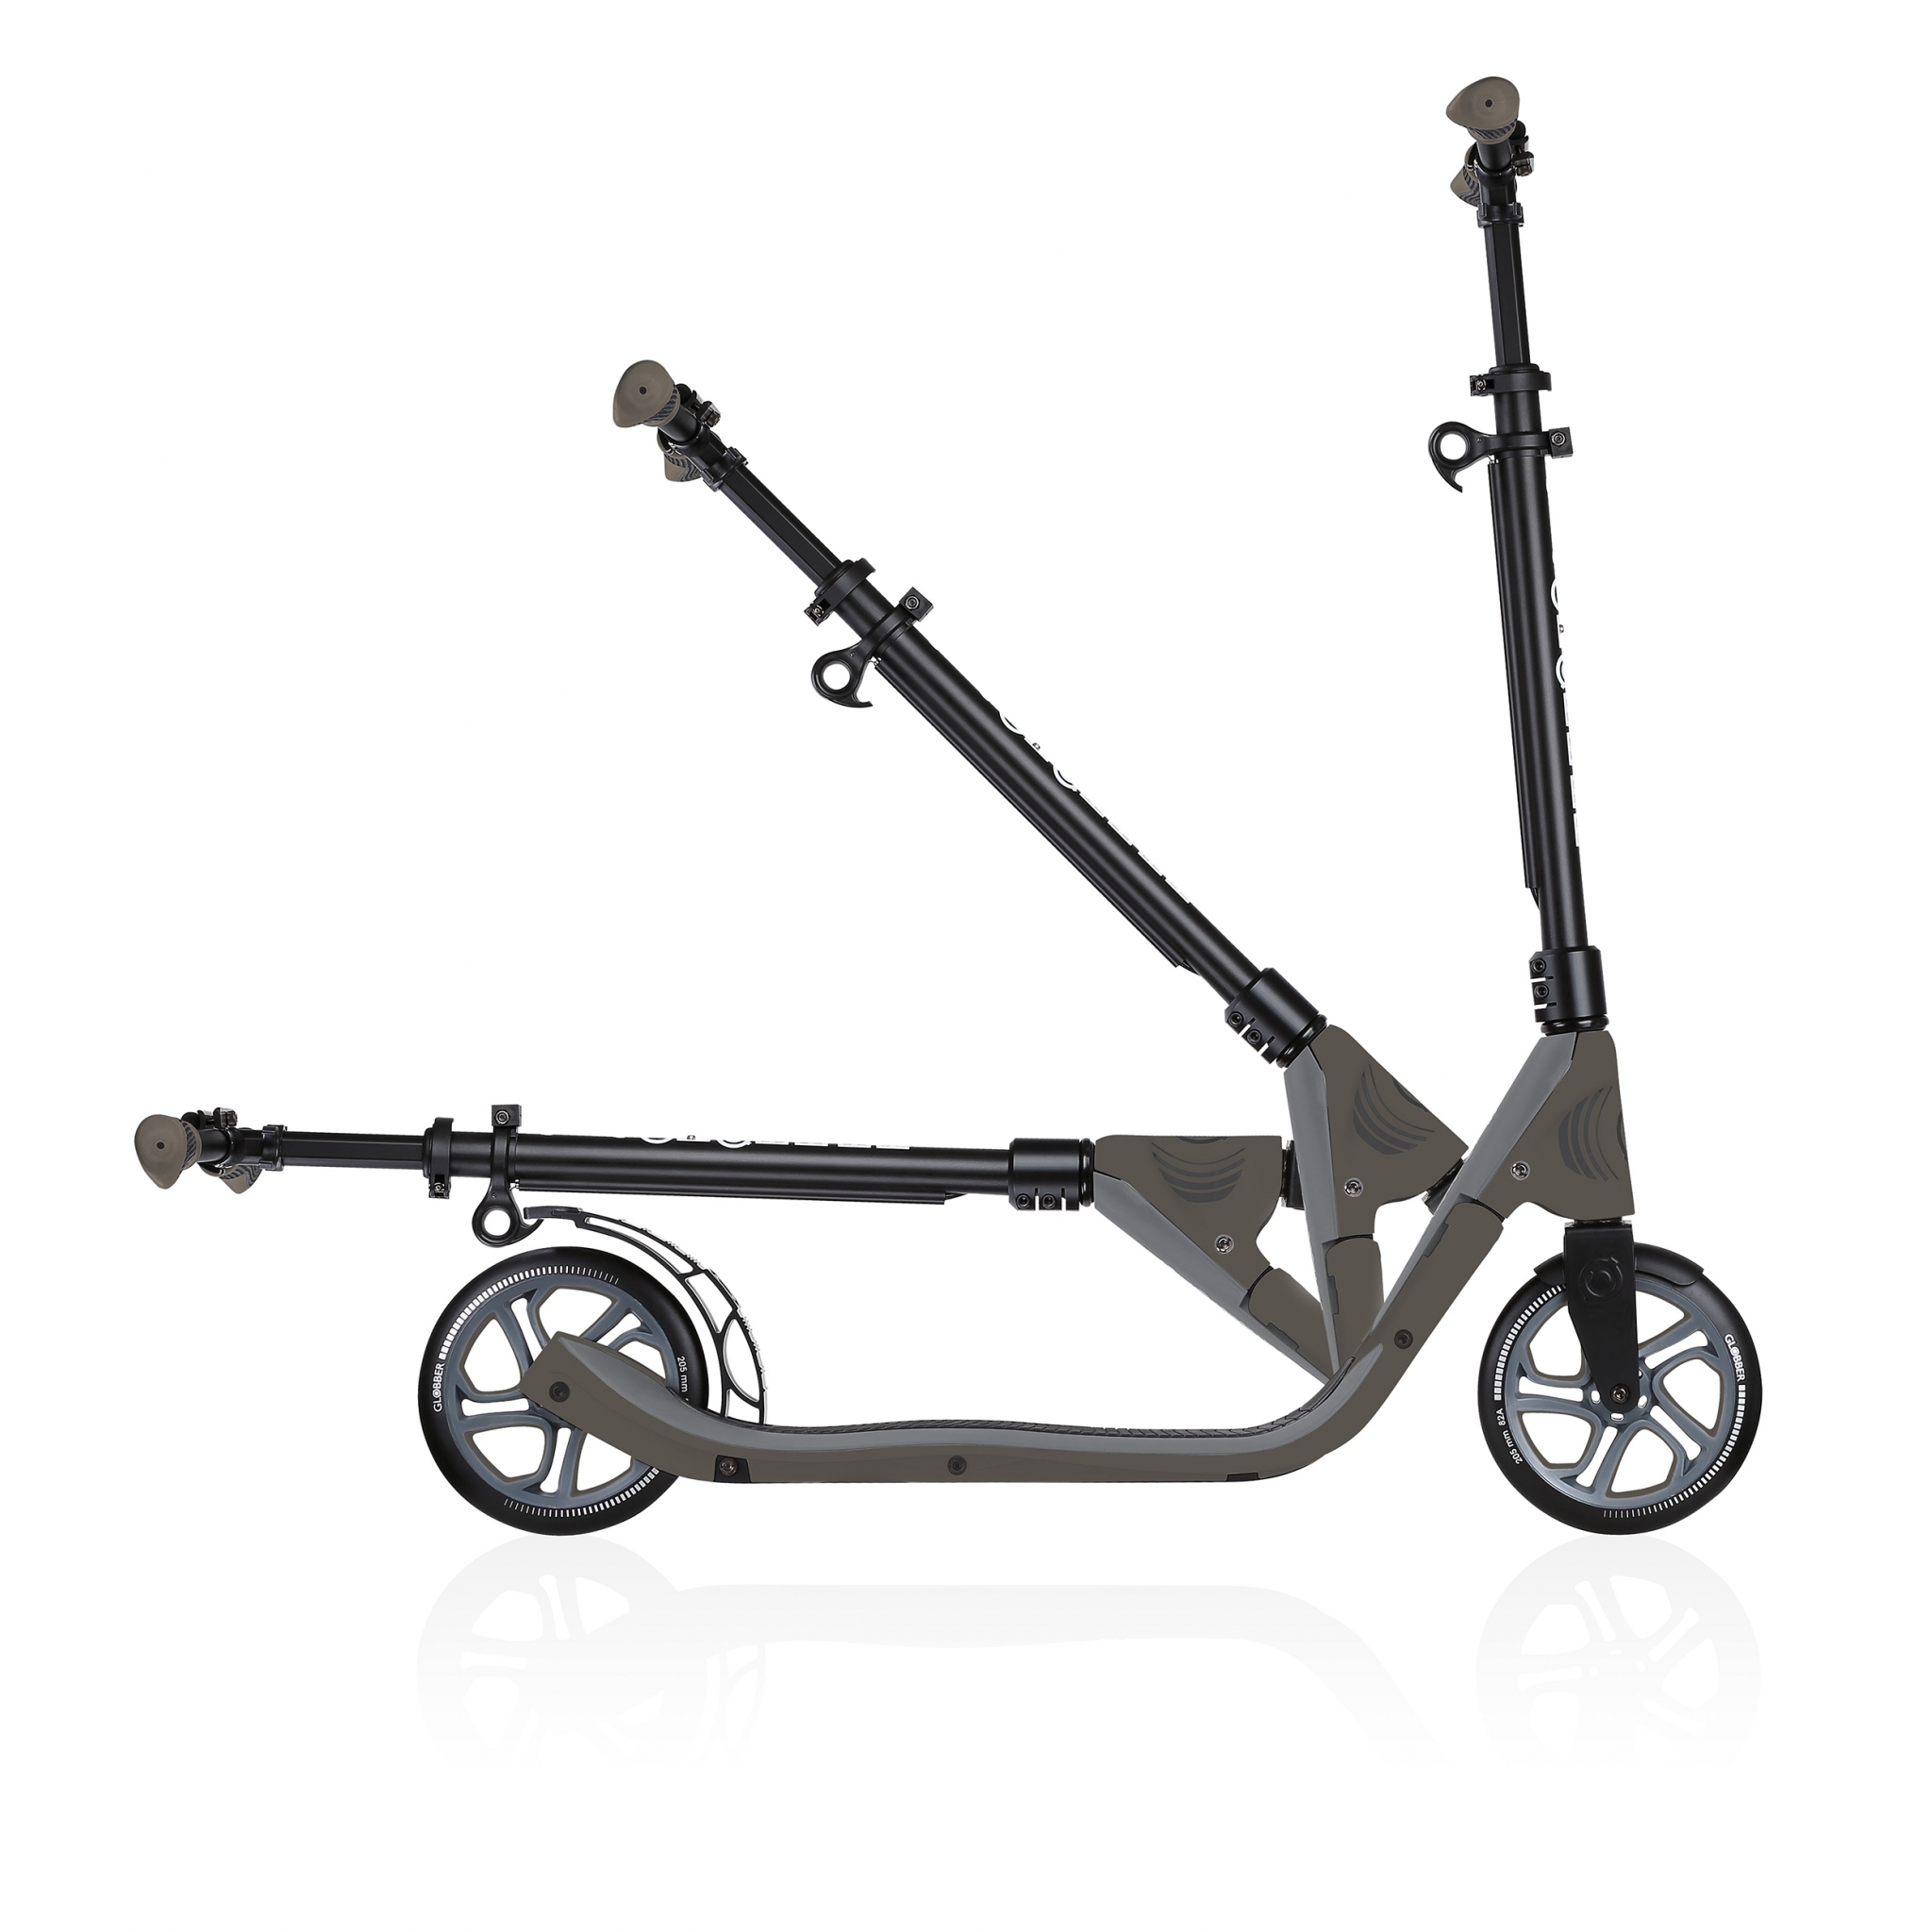 2-wheel foldable scooter for adults - Globber ONE NL 205 2